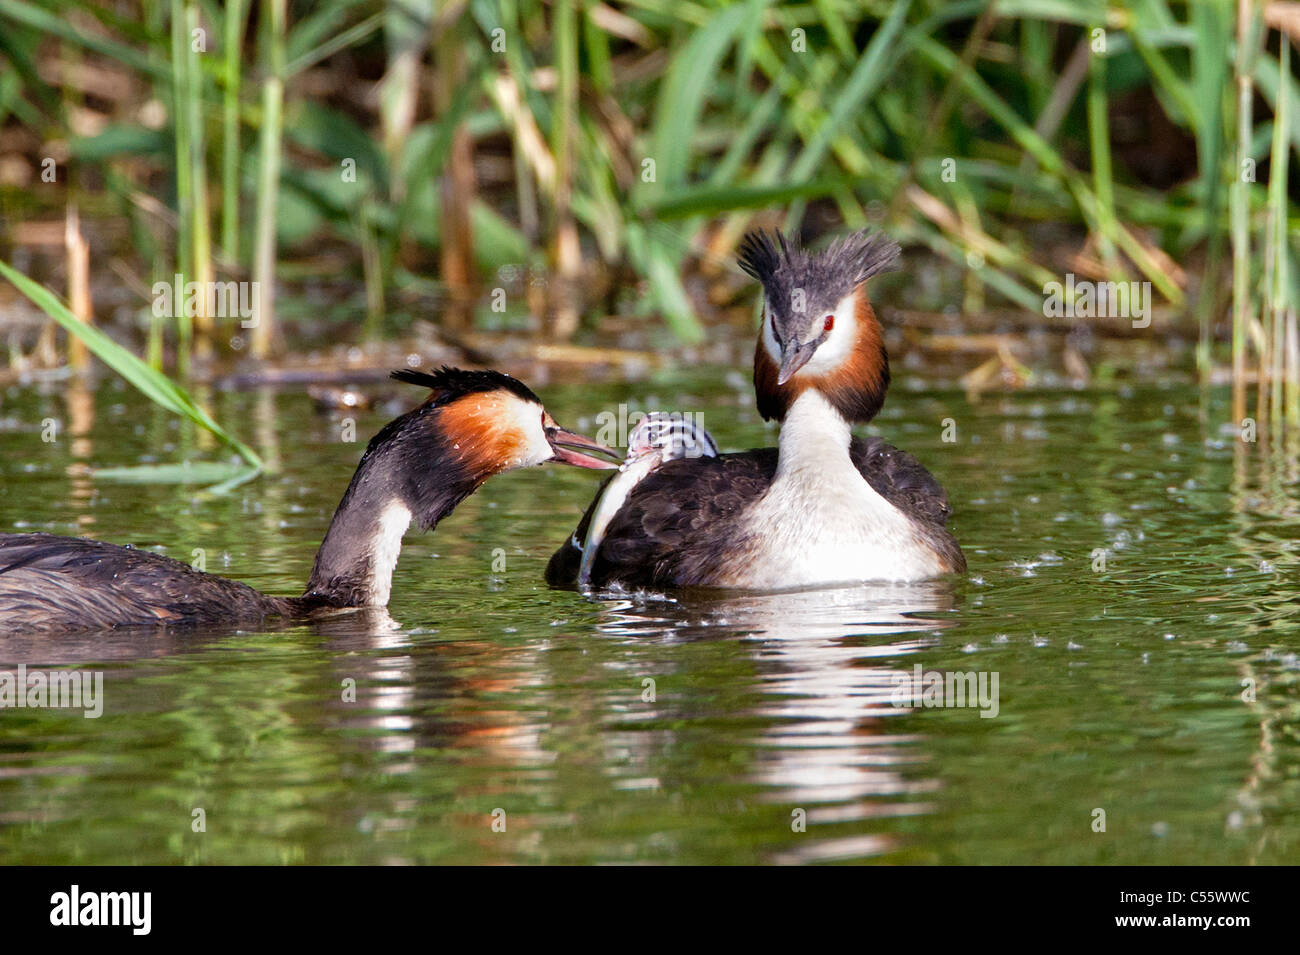 De Biesbosch national park. Great Crested Grebes, Podiceps cristatus. Male brings fish to young on the back of female. - Stock Image